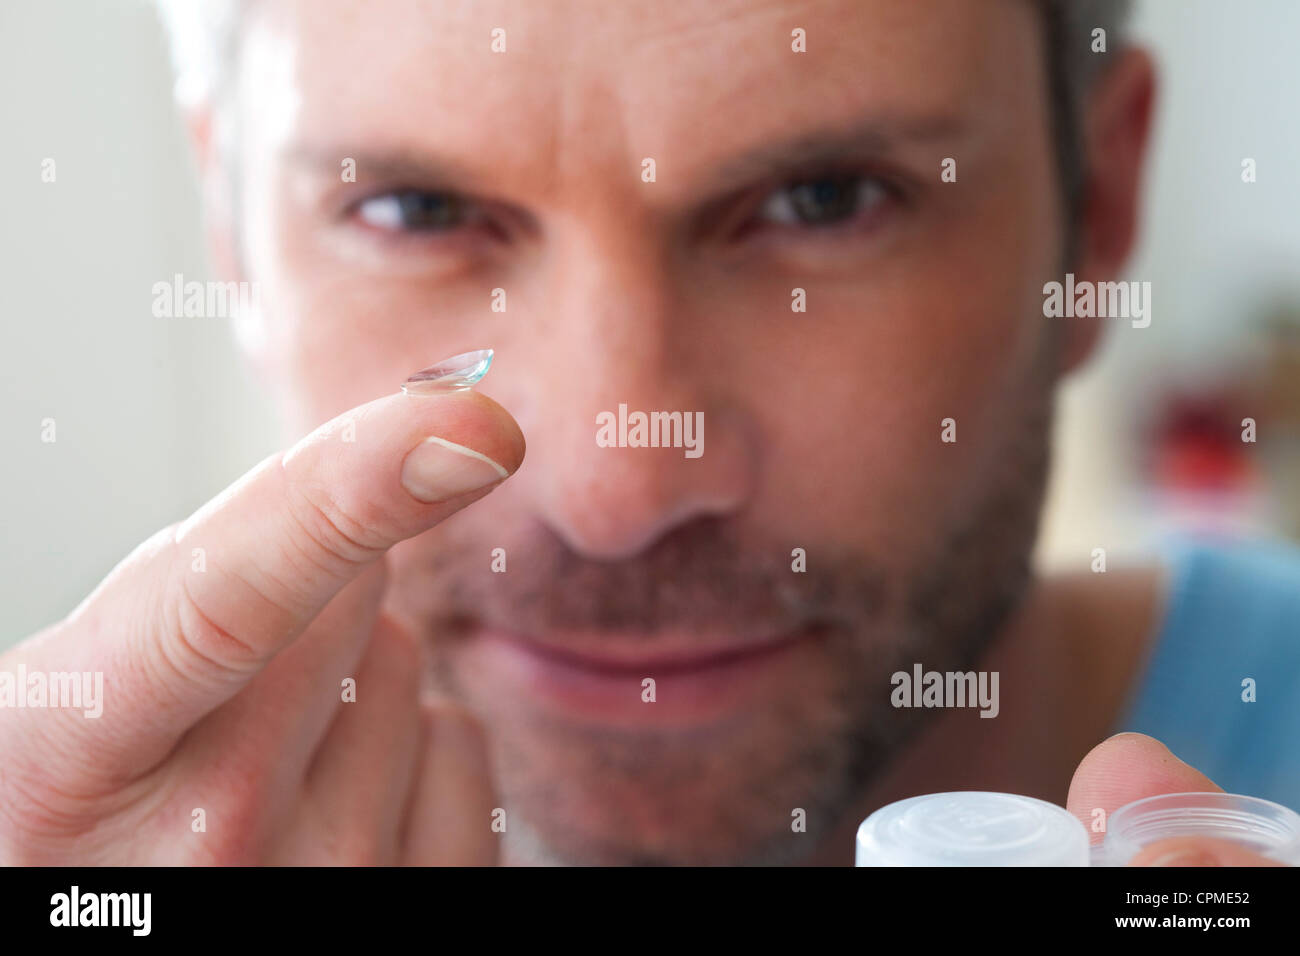 CONTACT LENS - Stock Image